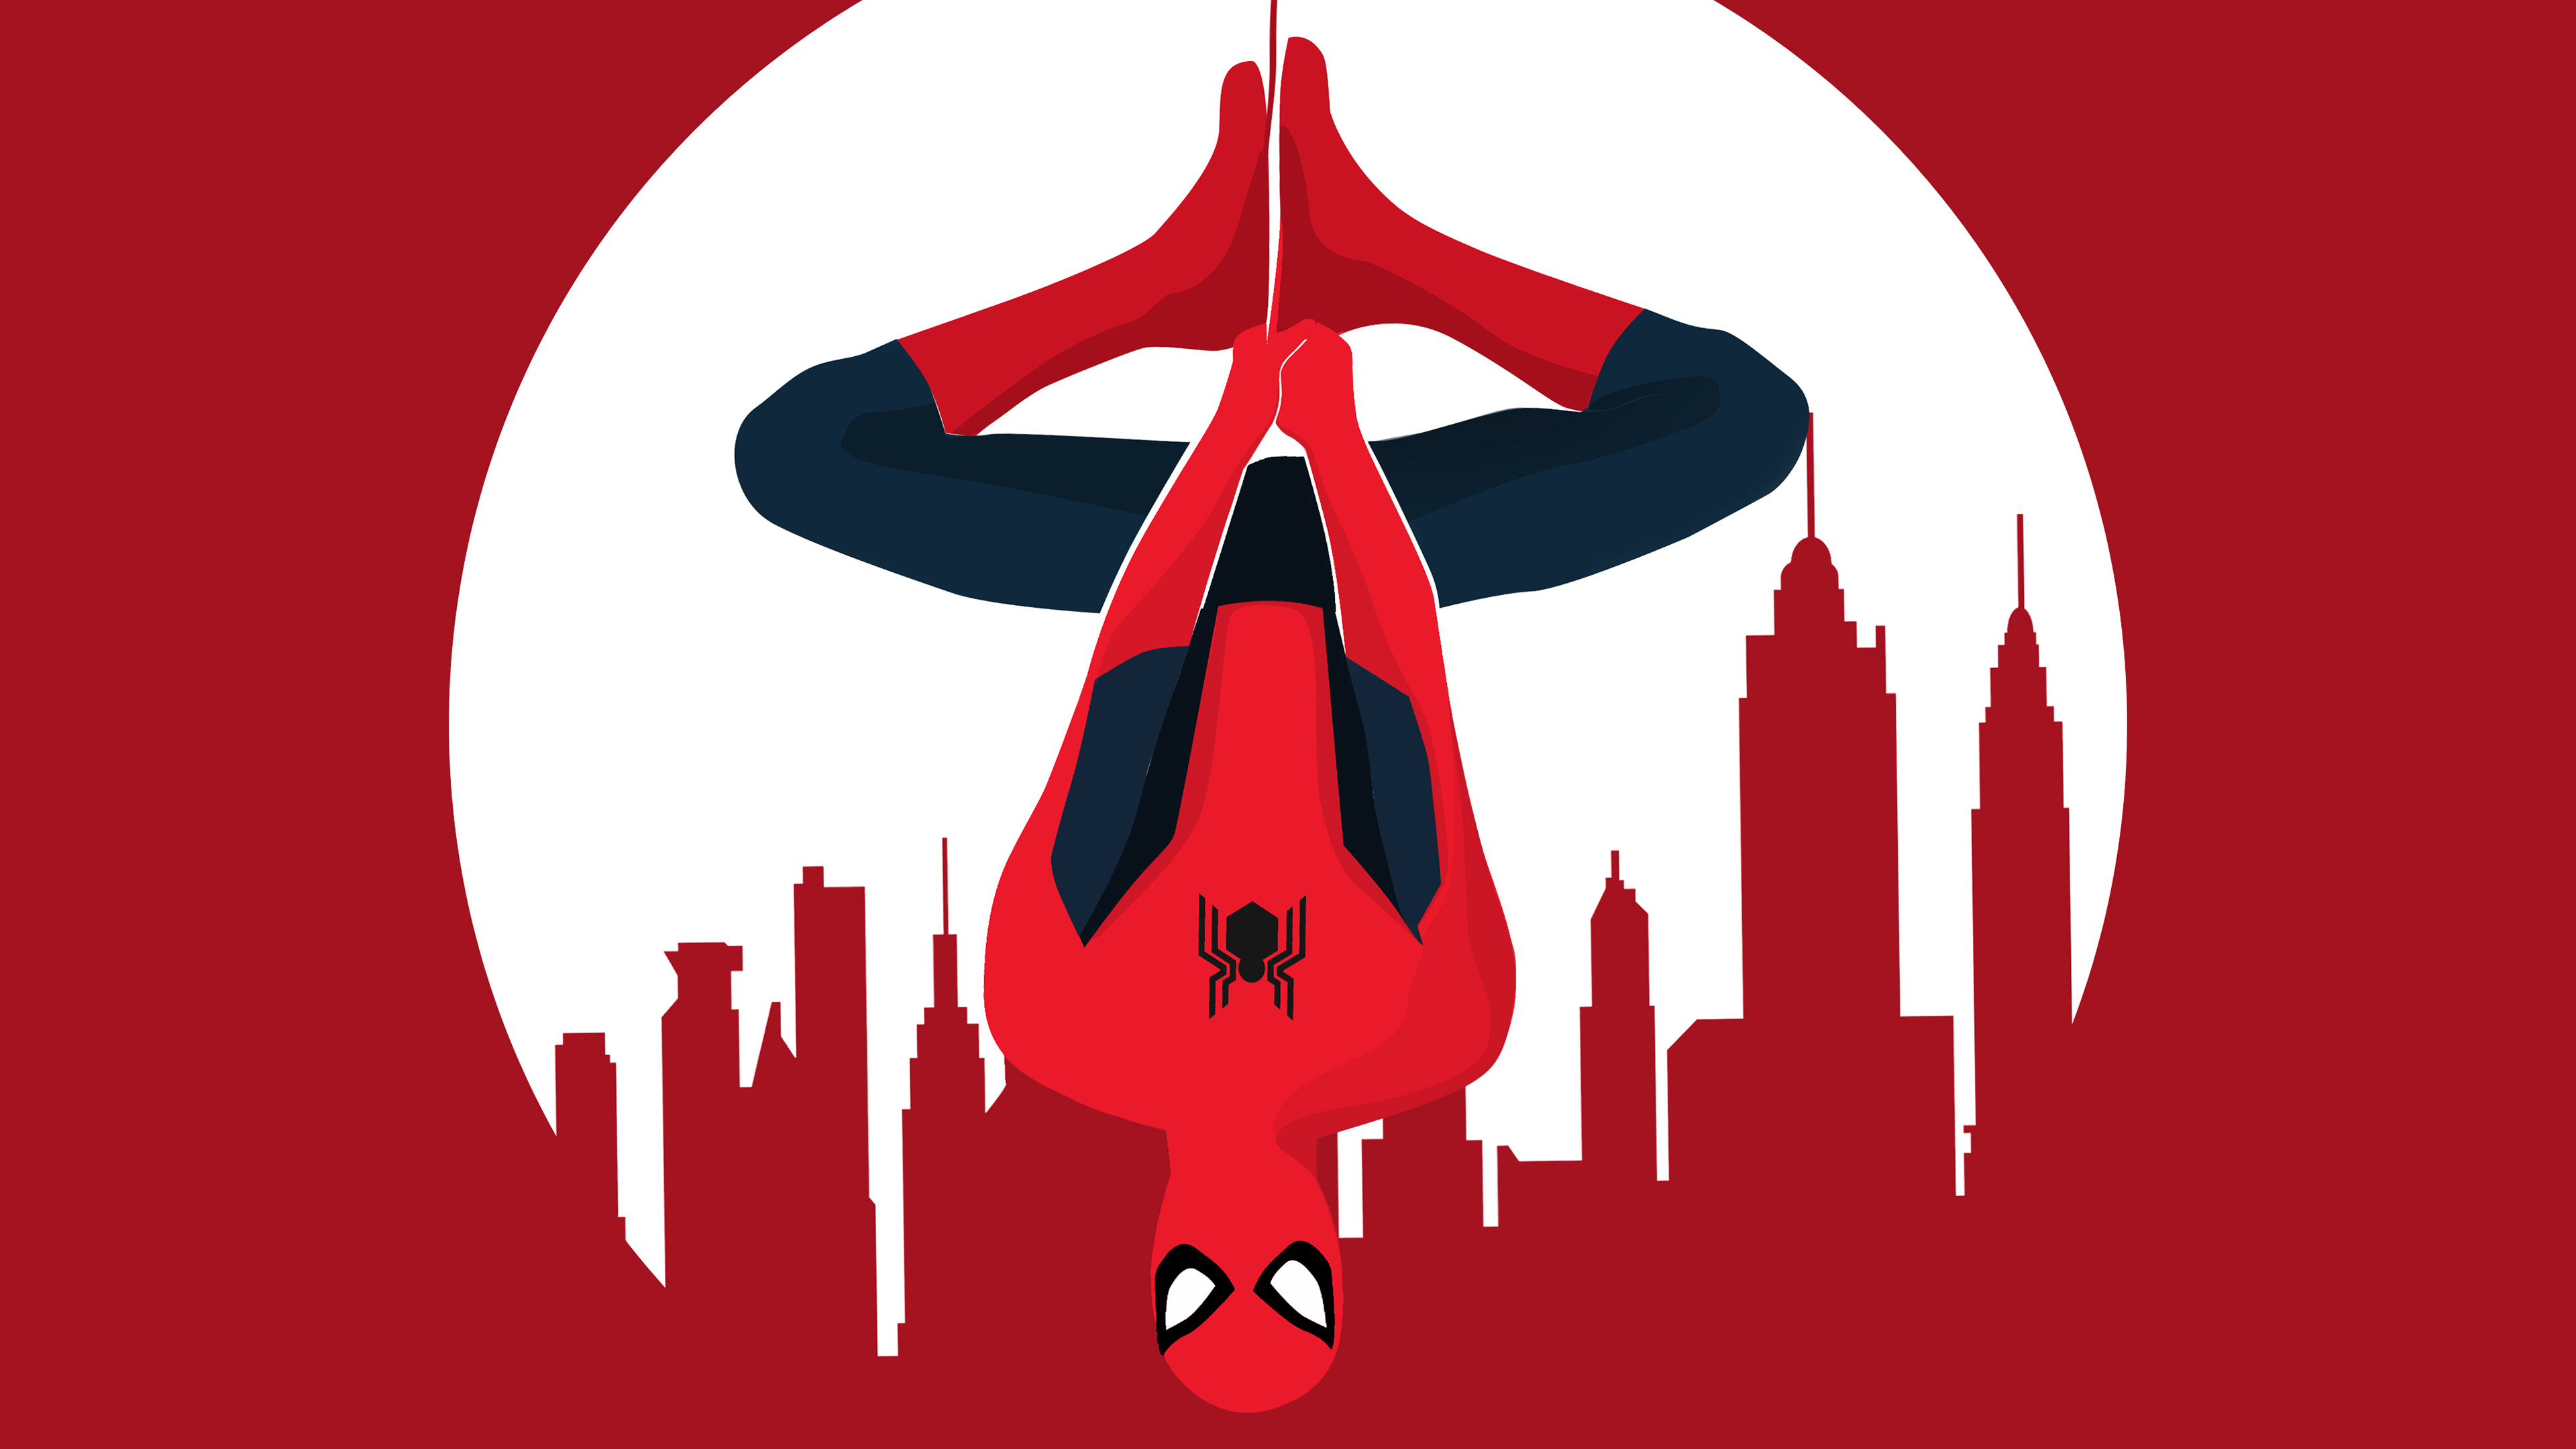 Published On January 19 2019 Spider Man 2019 Vector